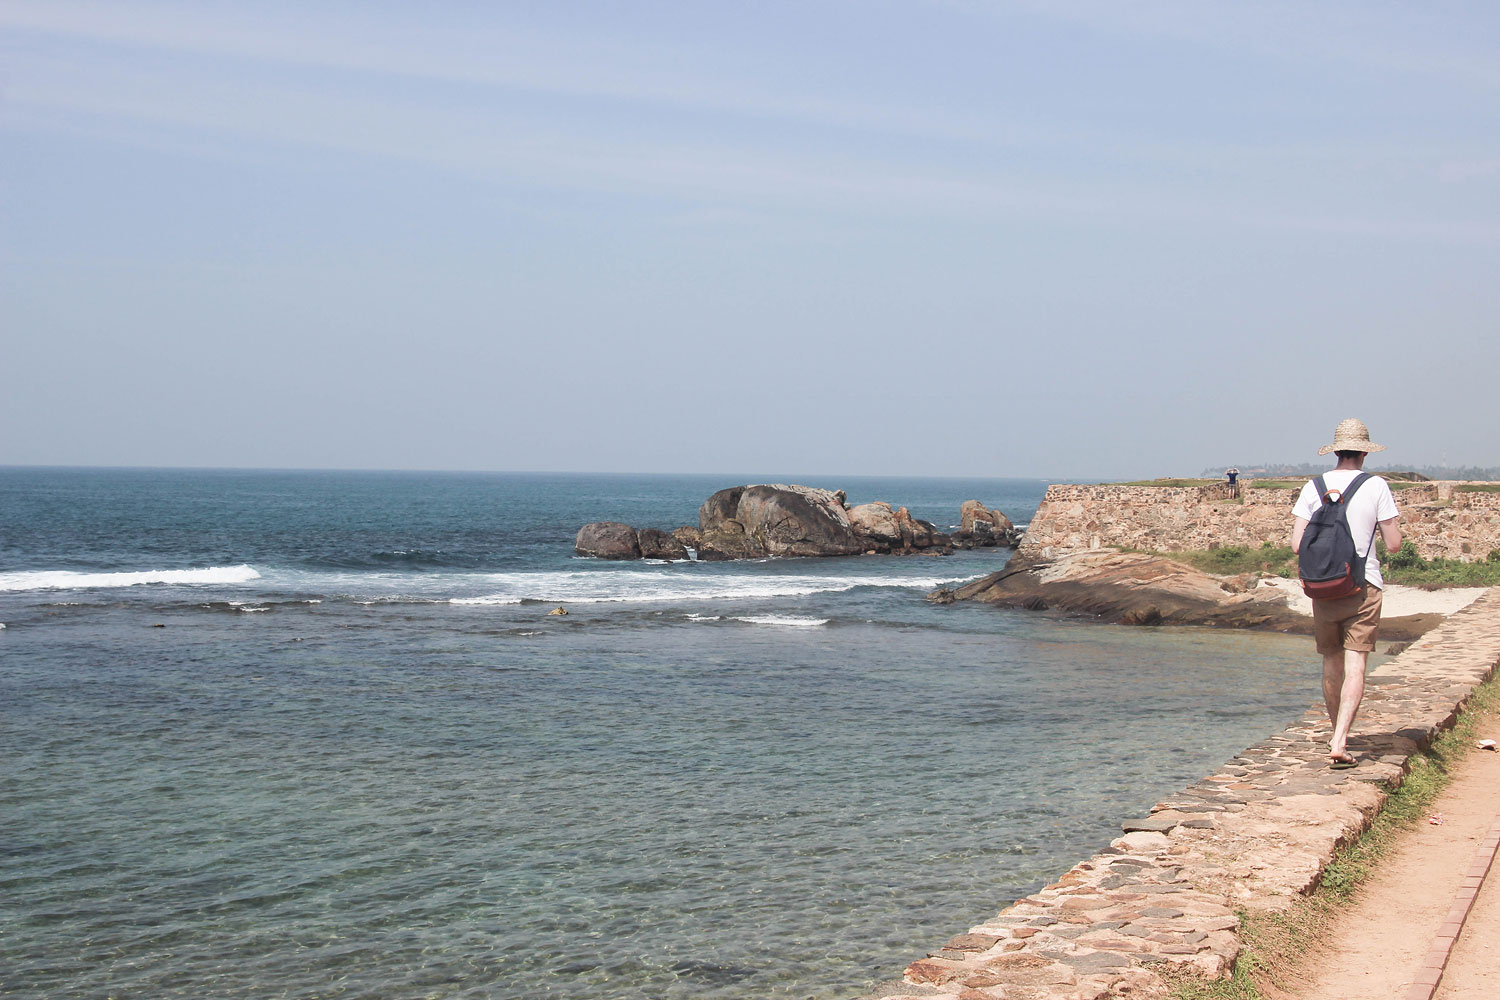 Sri_Lankan_Travel_Guide_Itinerary_Budgeting_Day_Trip_to_Galle_Mirissa_Where_to_stay_2.jpg